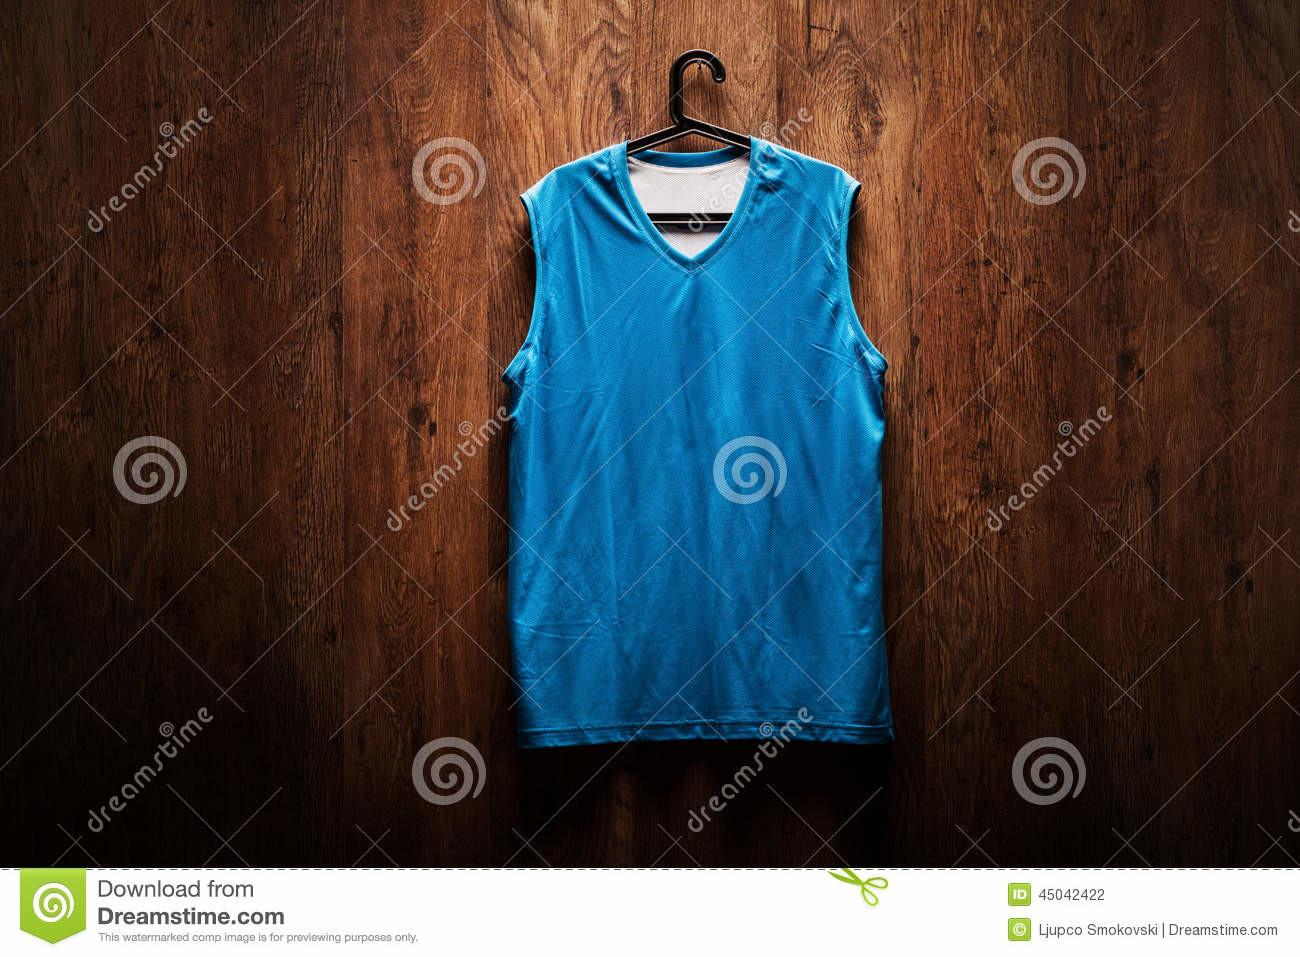 Blue Basketball Jersey Hanging Wooden Wall Stock